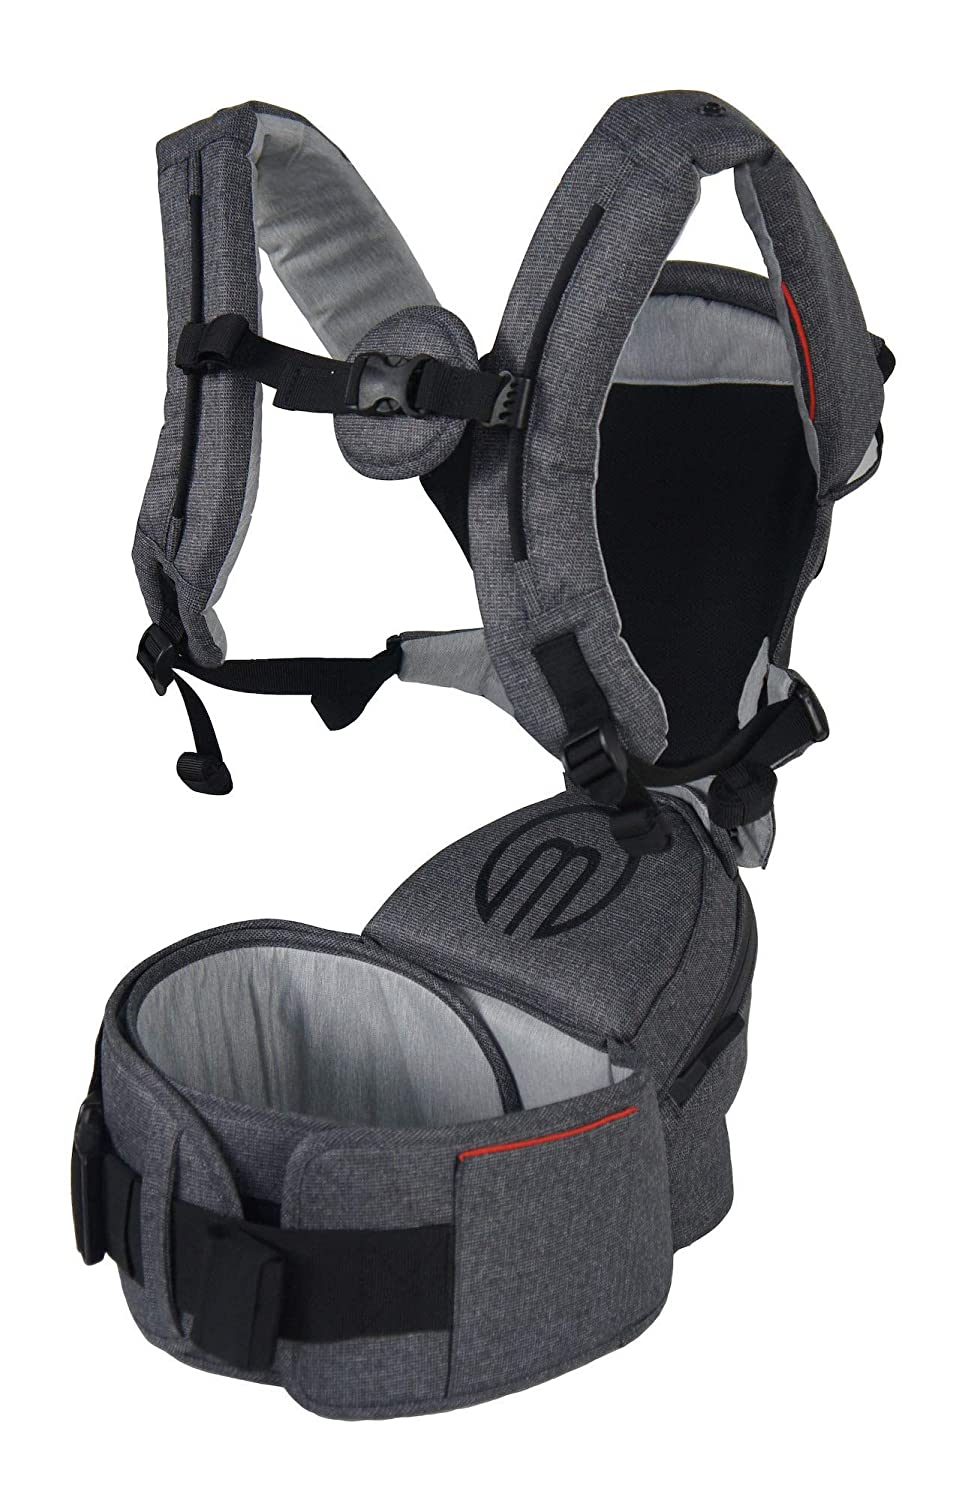 MiaMily Hipster Smart Ergonomic Baby Child Carrier Baby Hiking Backpack with Built-in 3D Hip Seat for Toddlers or Infants